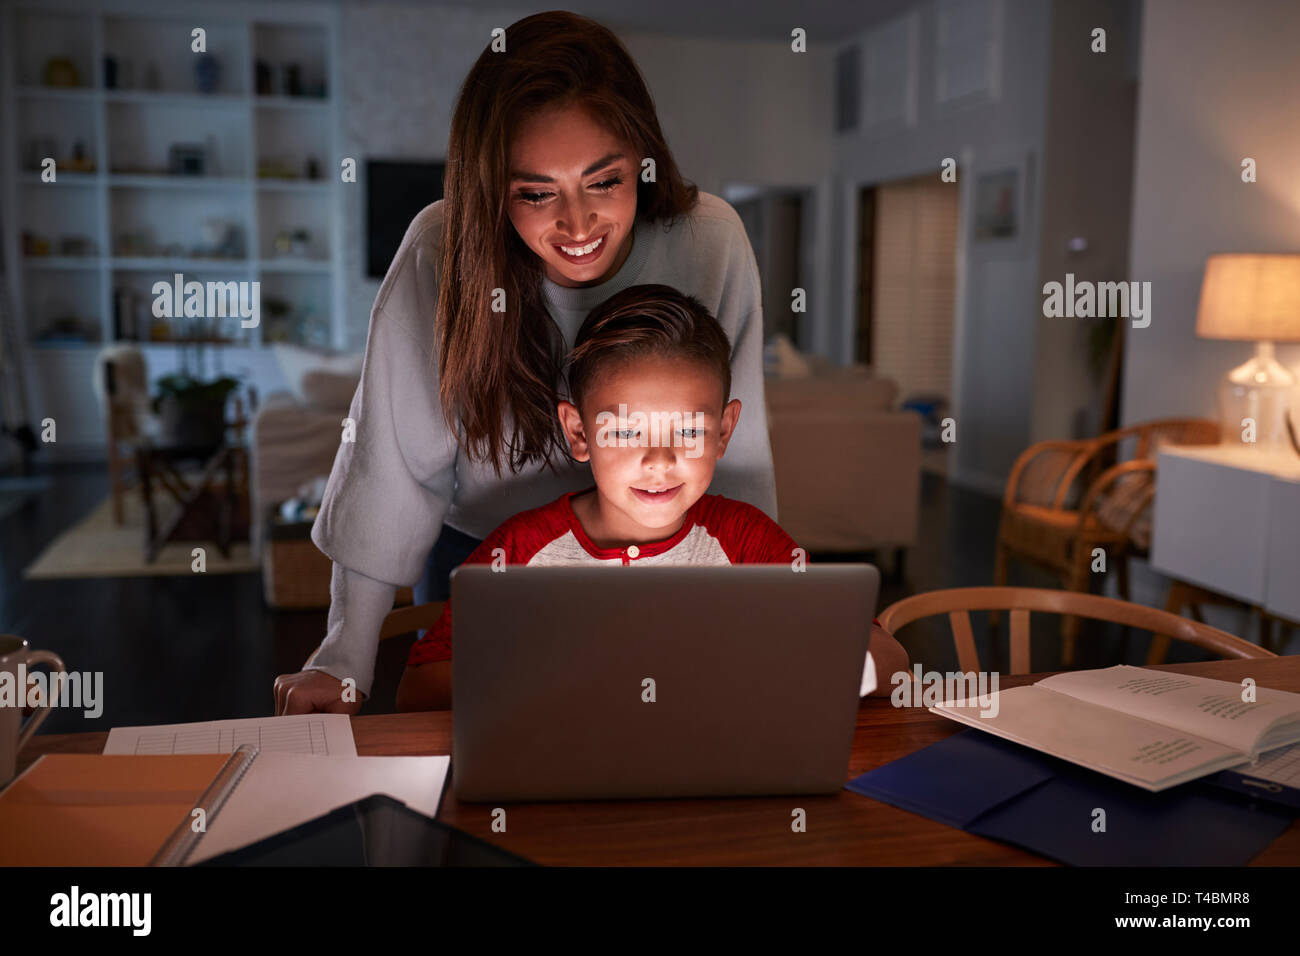 Hispanic woman looking over her son's shoulder while he does his homework using laptop computer Stock Photo